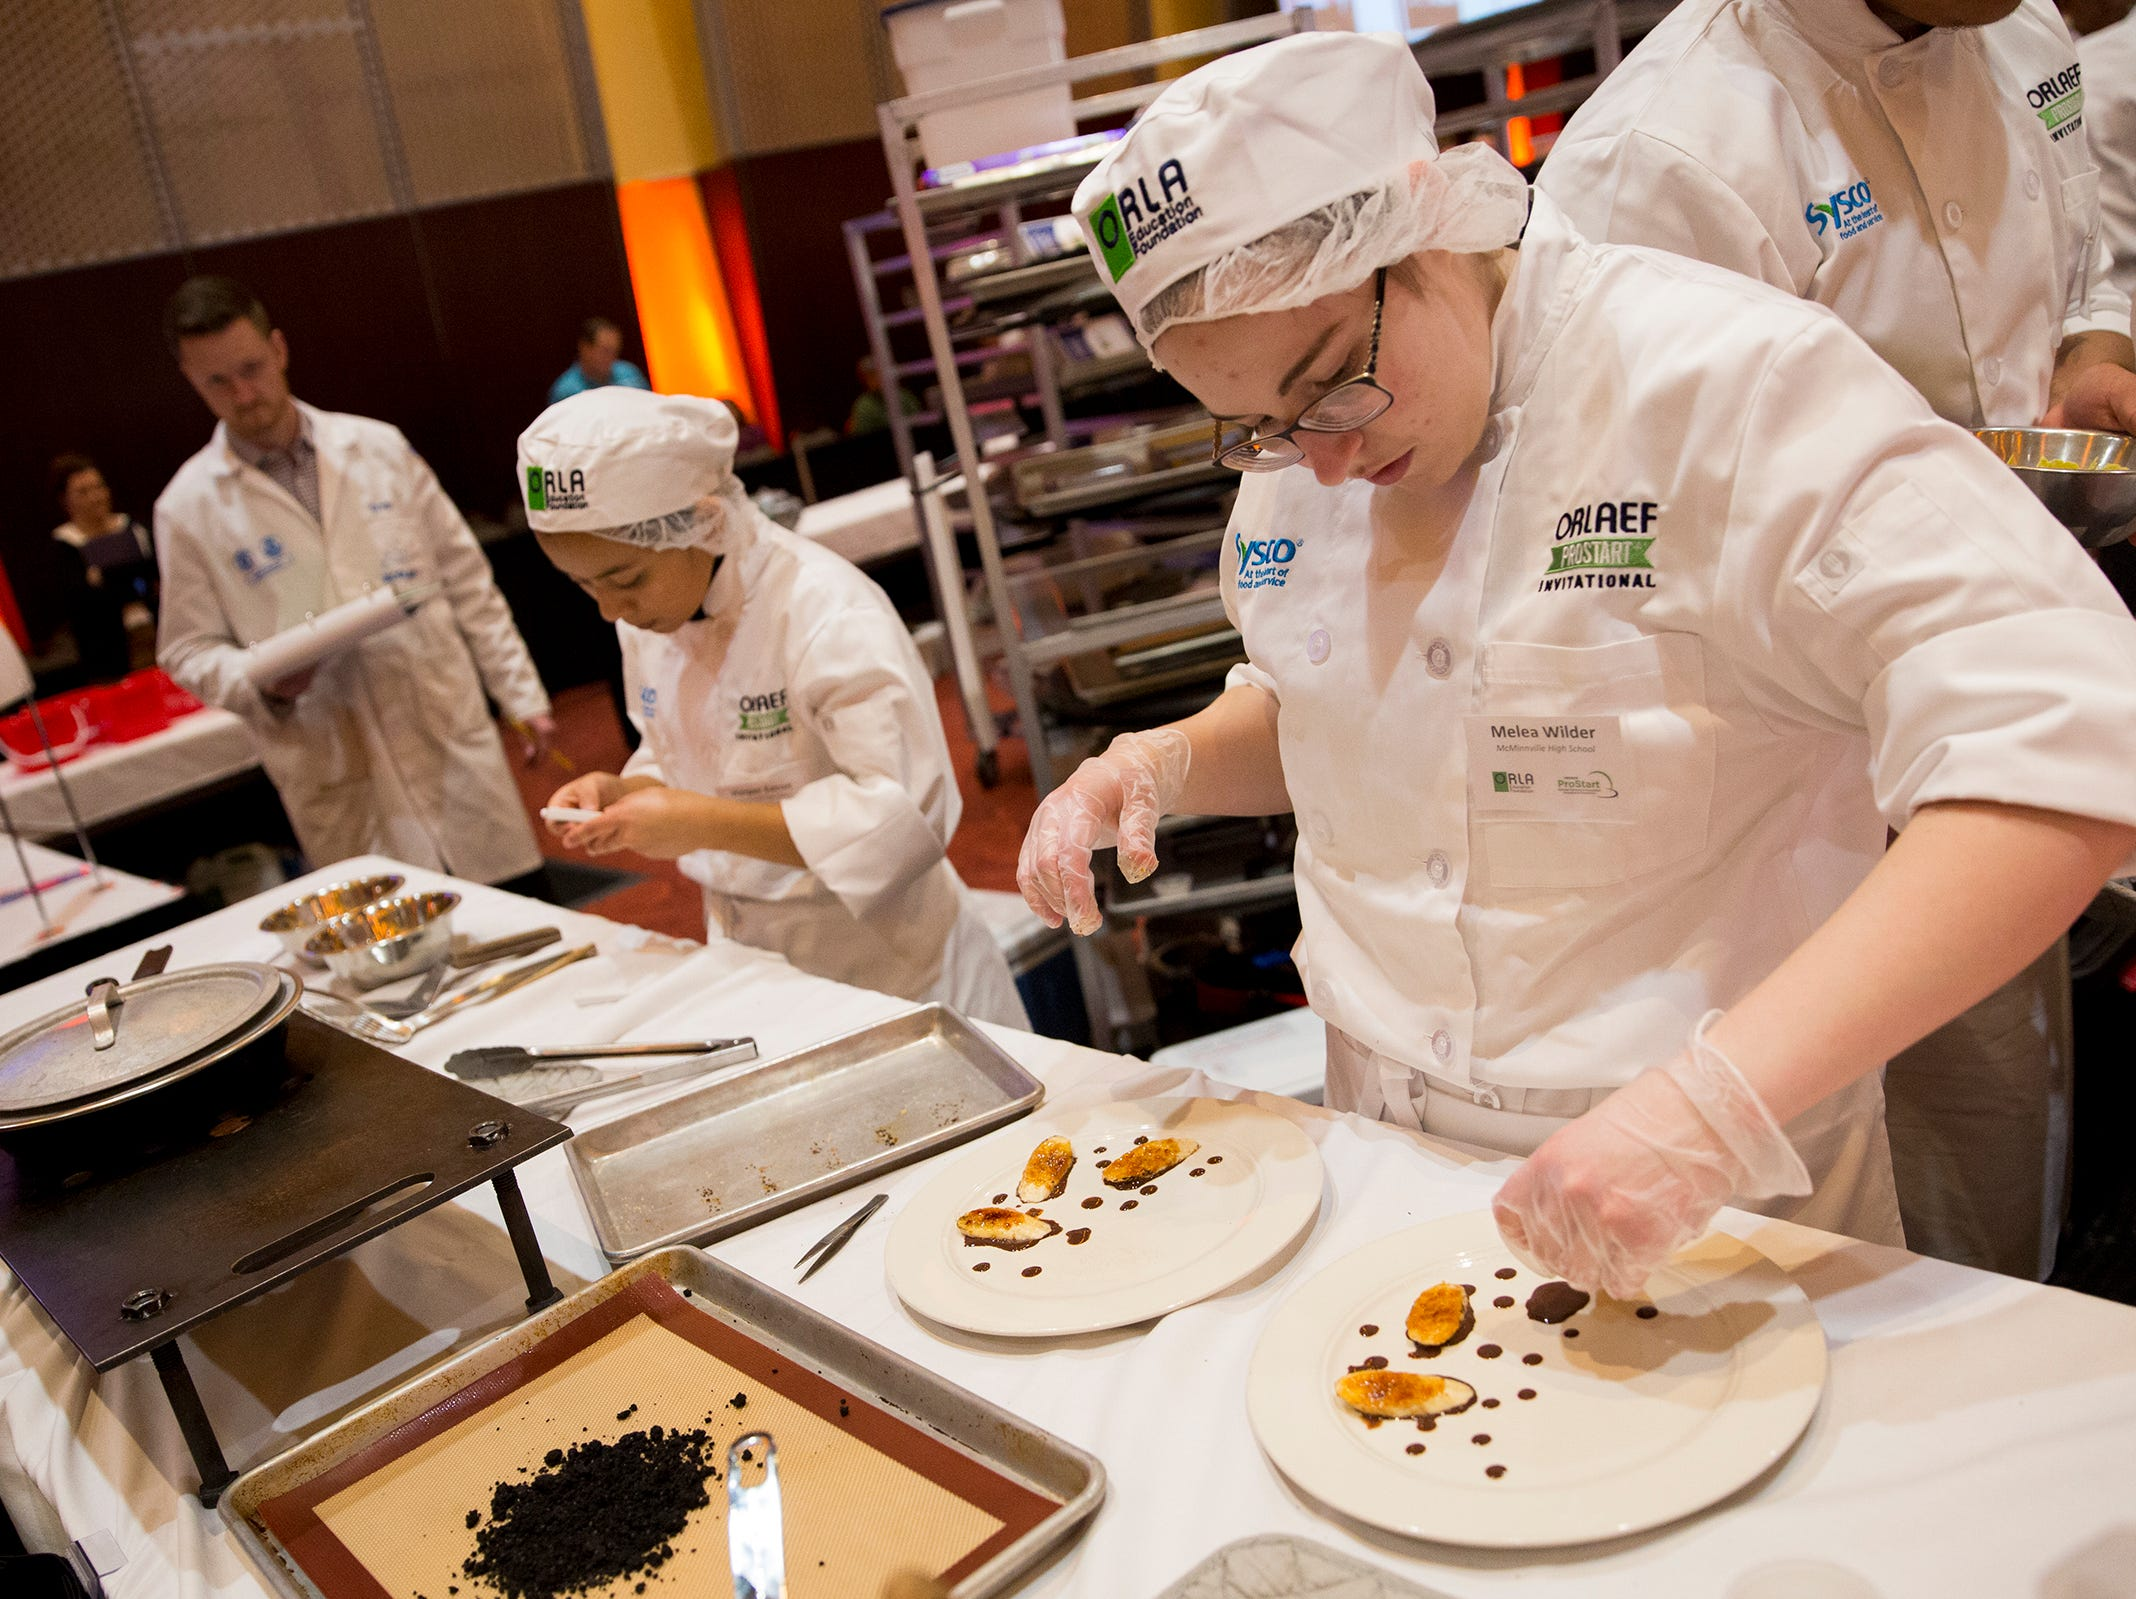 McMinnville's Melea Wilder works on a desert dish during the ORLAEF's ProStart Invitational, a statewide high school culinary competition, at the Salem Convention Center on March 18, 2019.